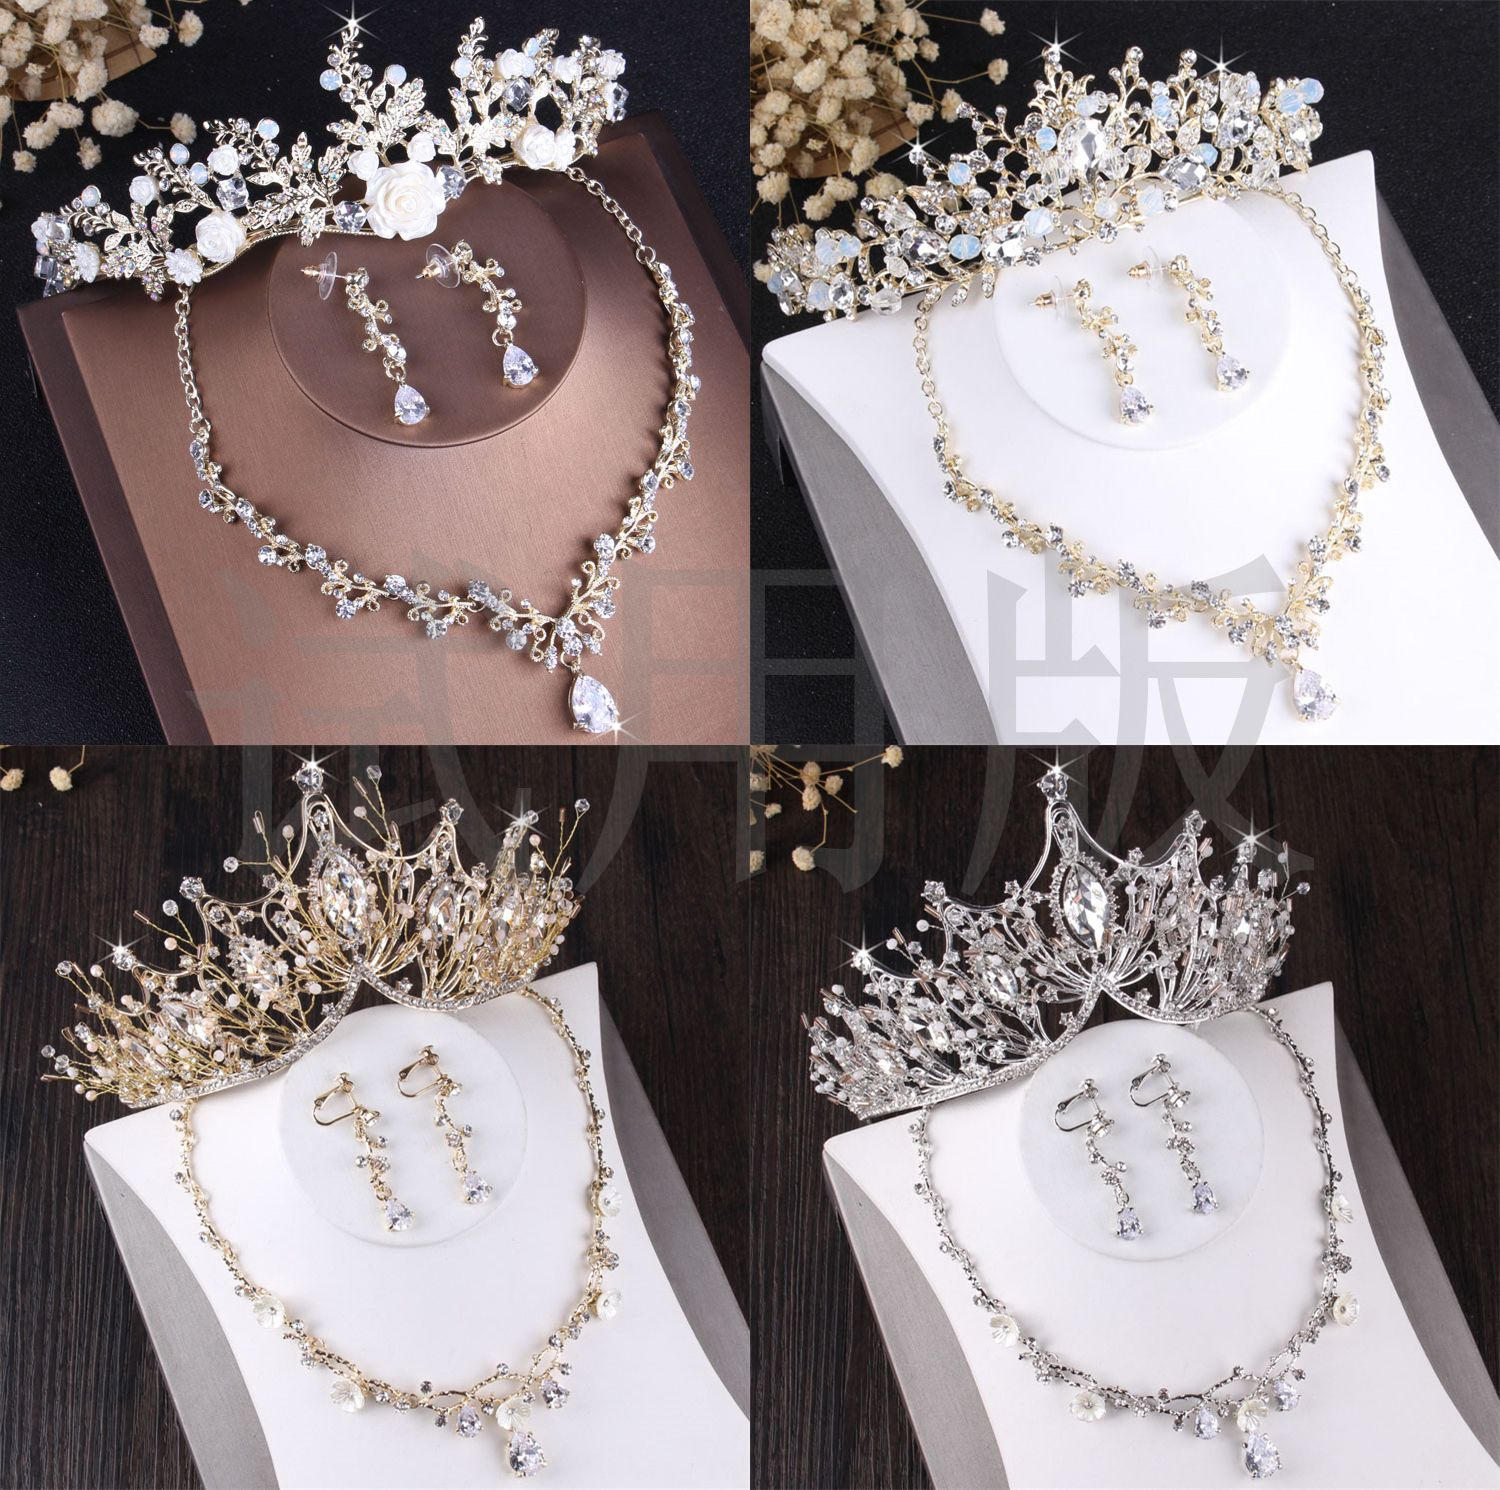 high-end gold white tiara necklace hair bride wedding jewelry sets and accessories